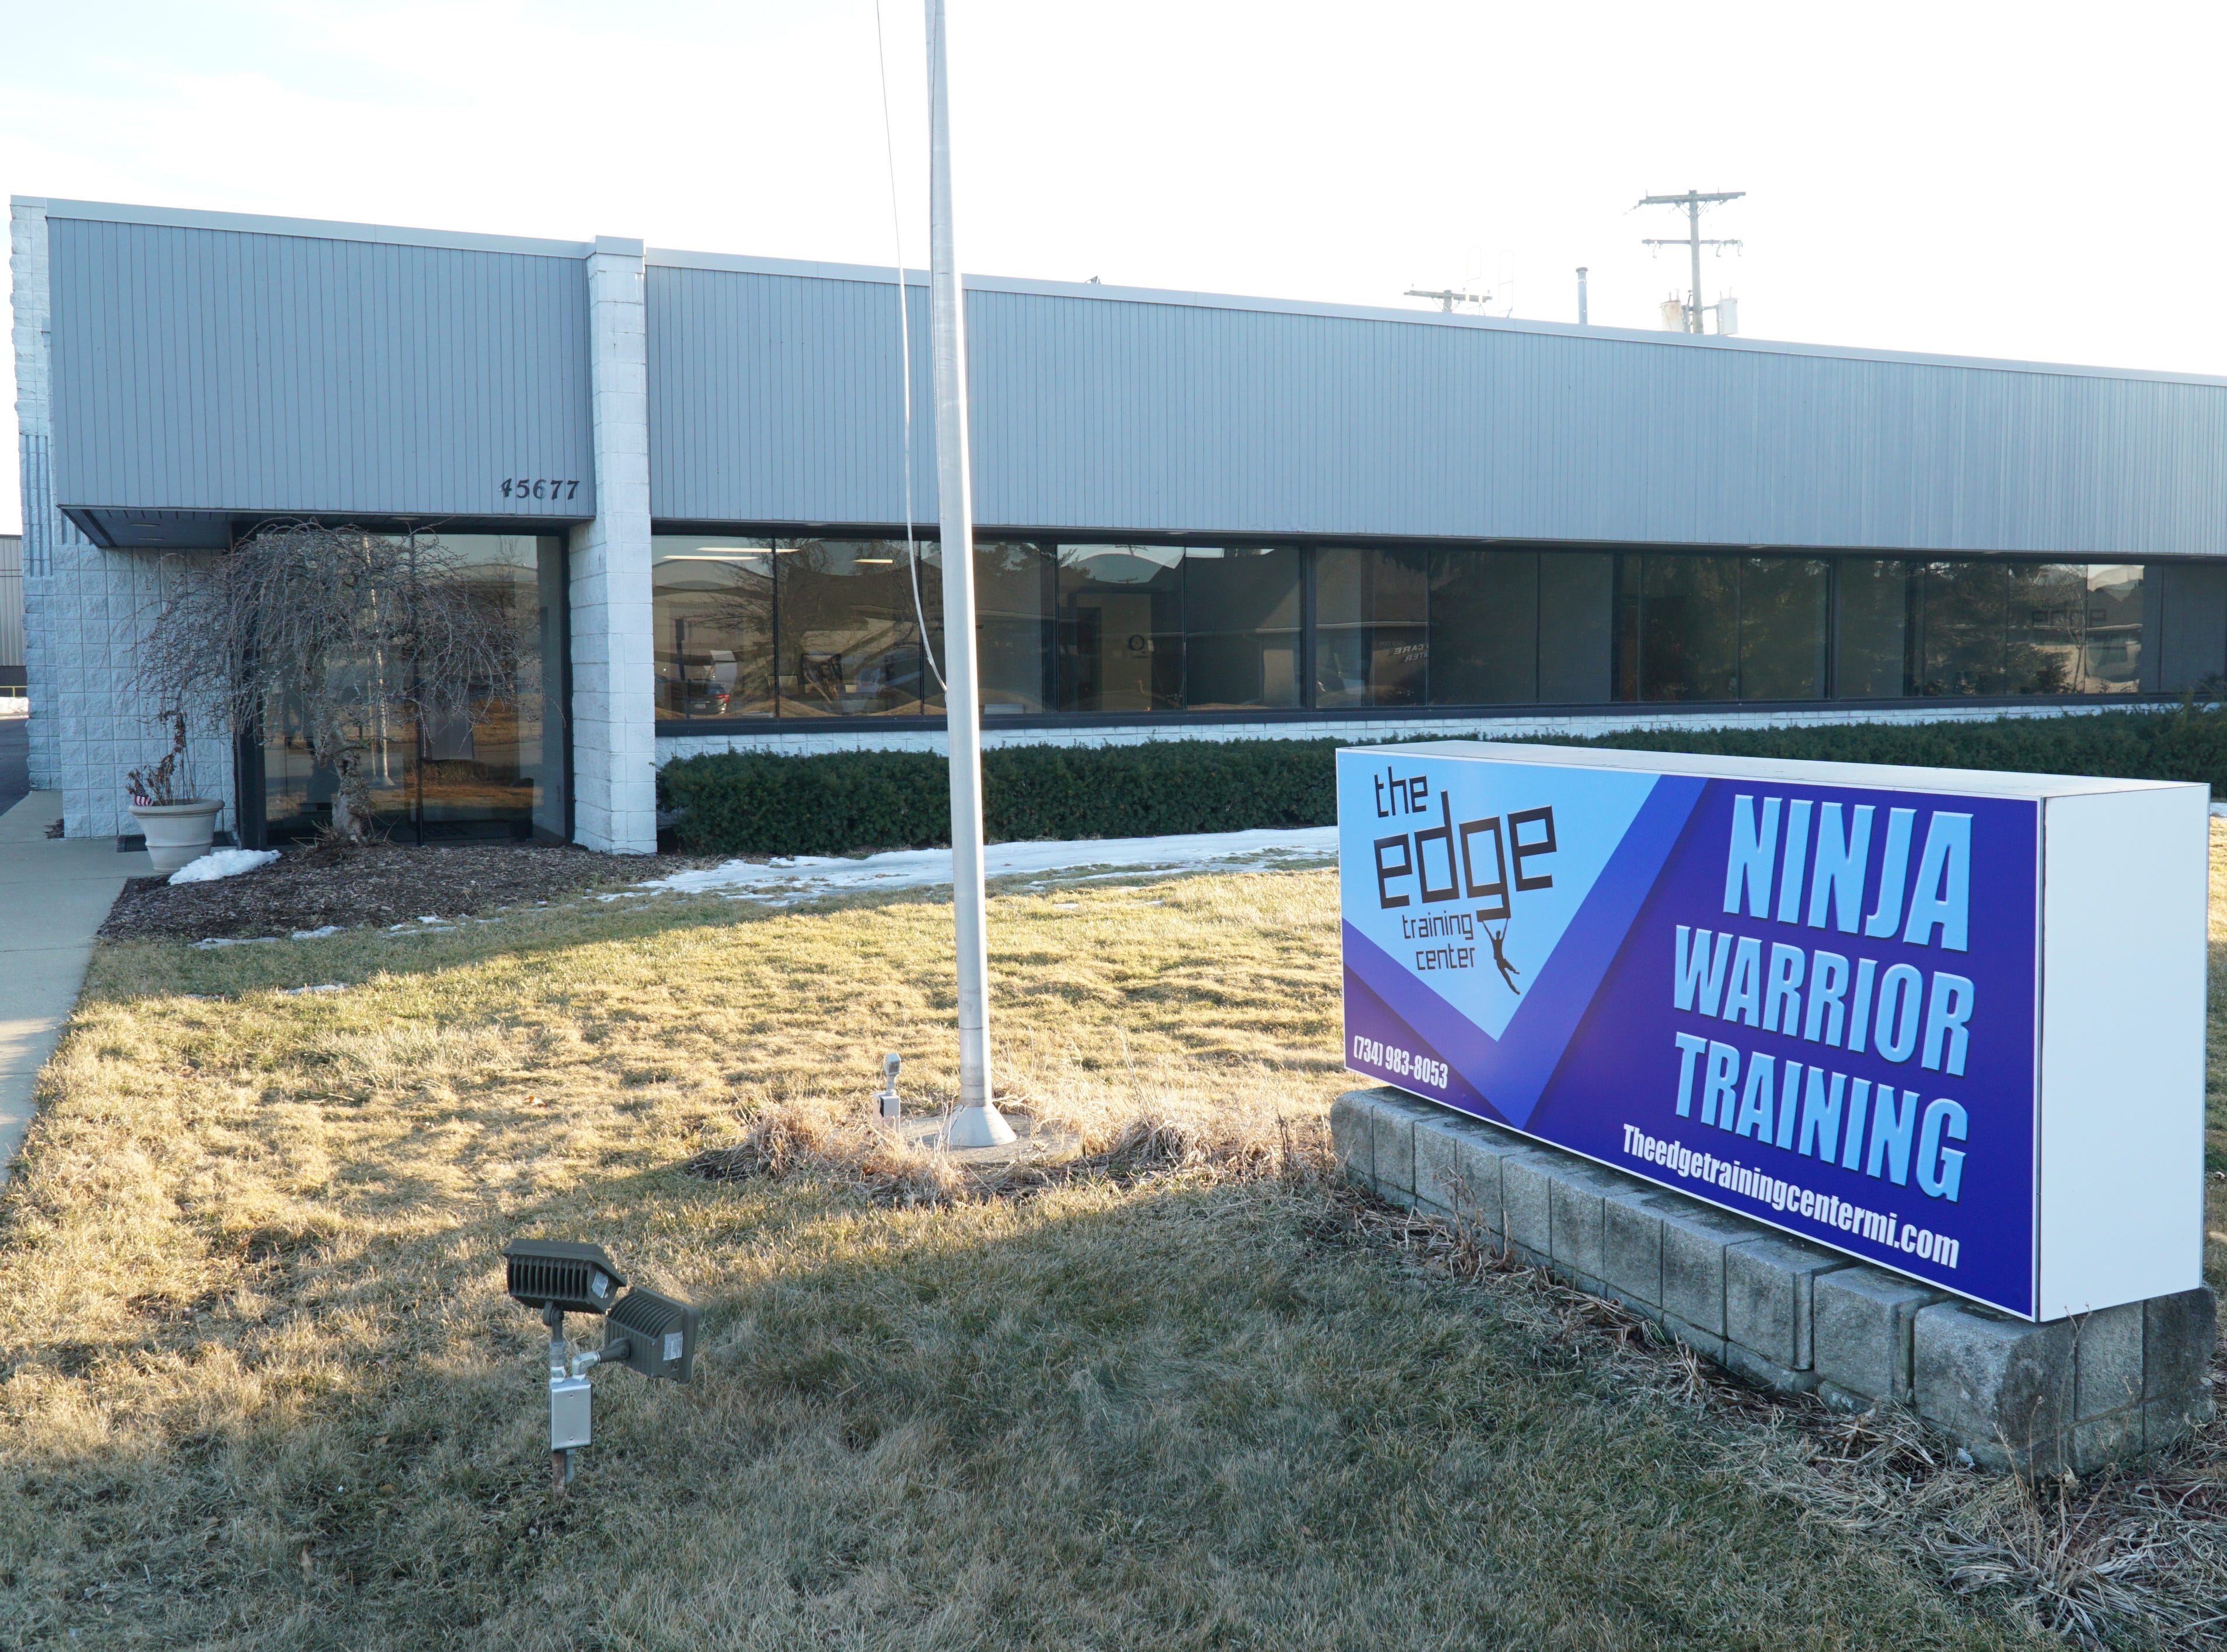 The Edge Training Center on Helm Street in Plymouth.